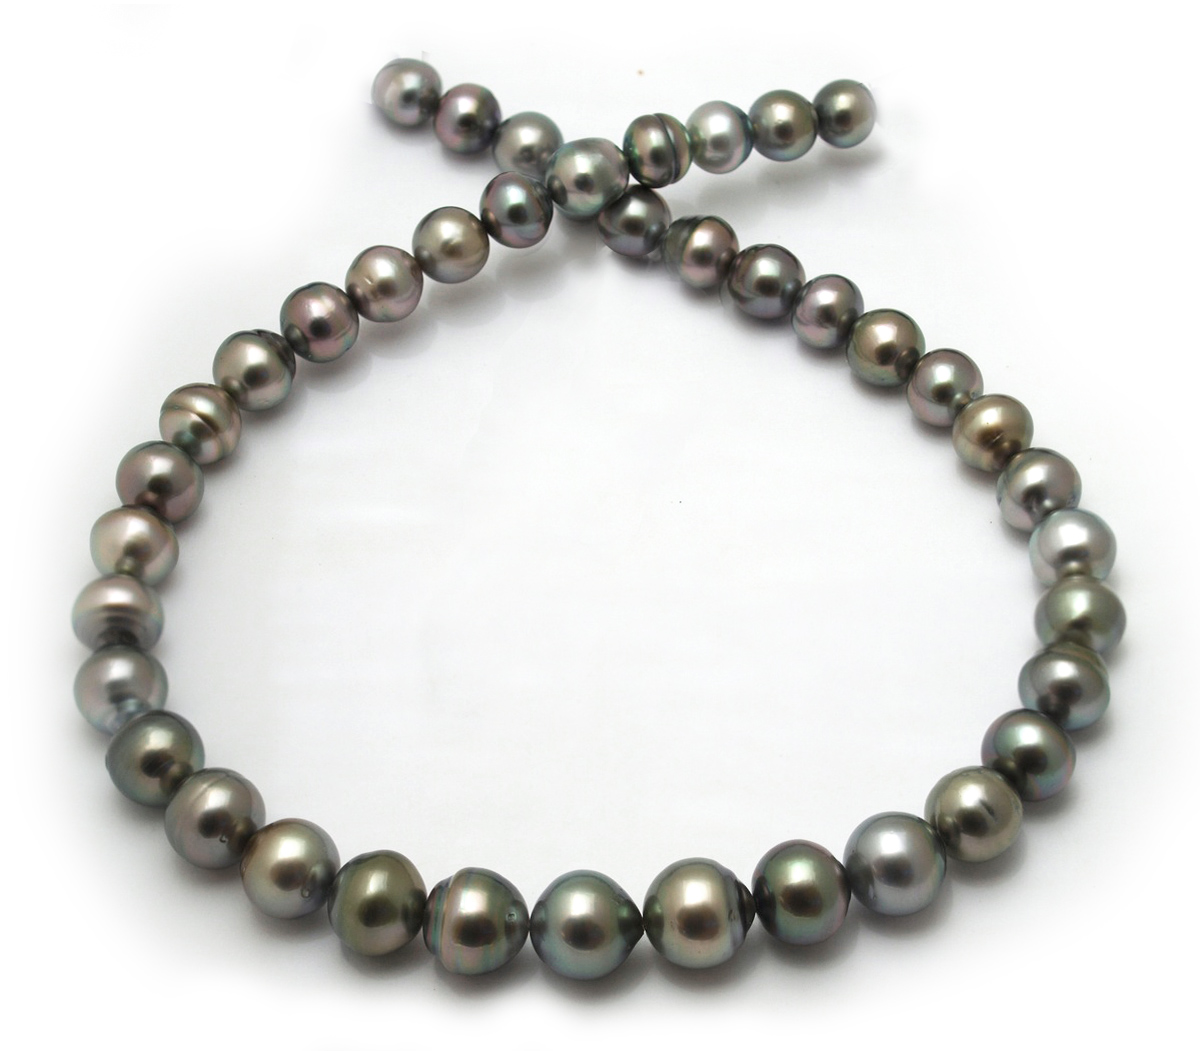 semi tahitian pearl necklace with gray tahitian pearls